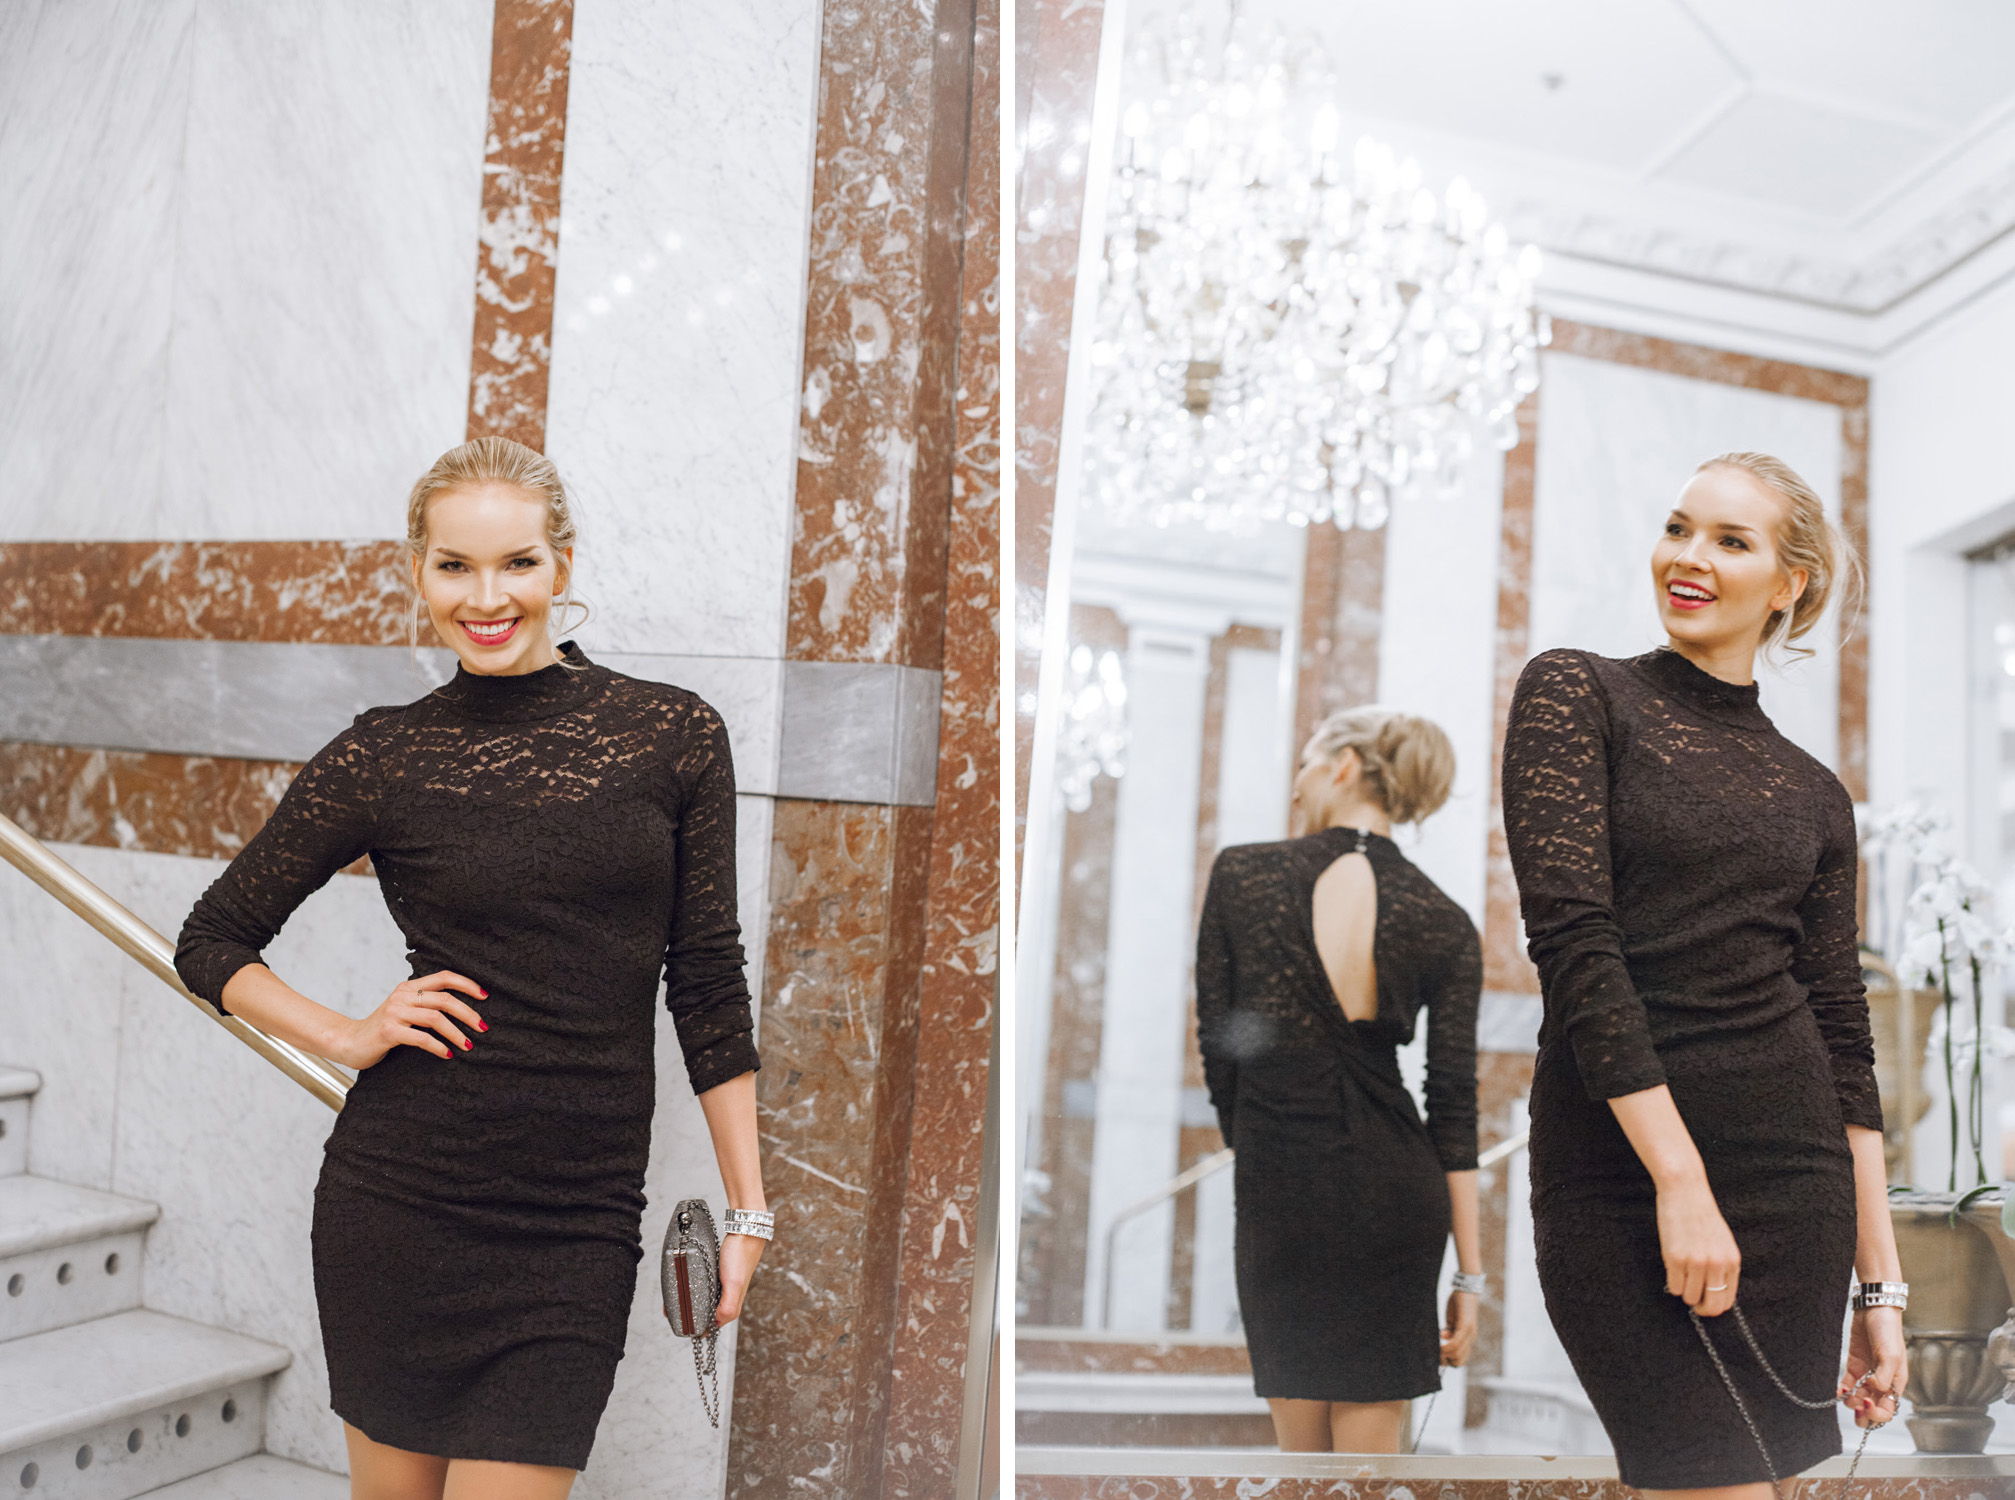 Zalando Blogger Awards - People´s Choice WINNER 2015 ! My Outfit.